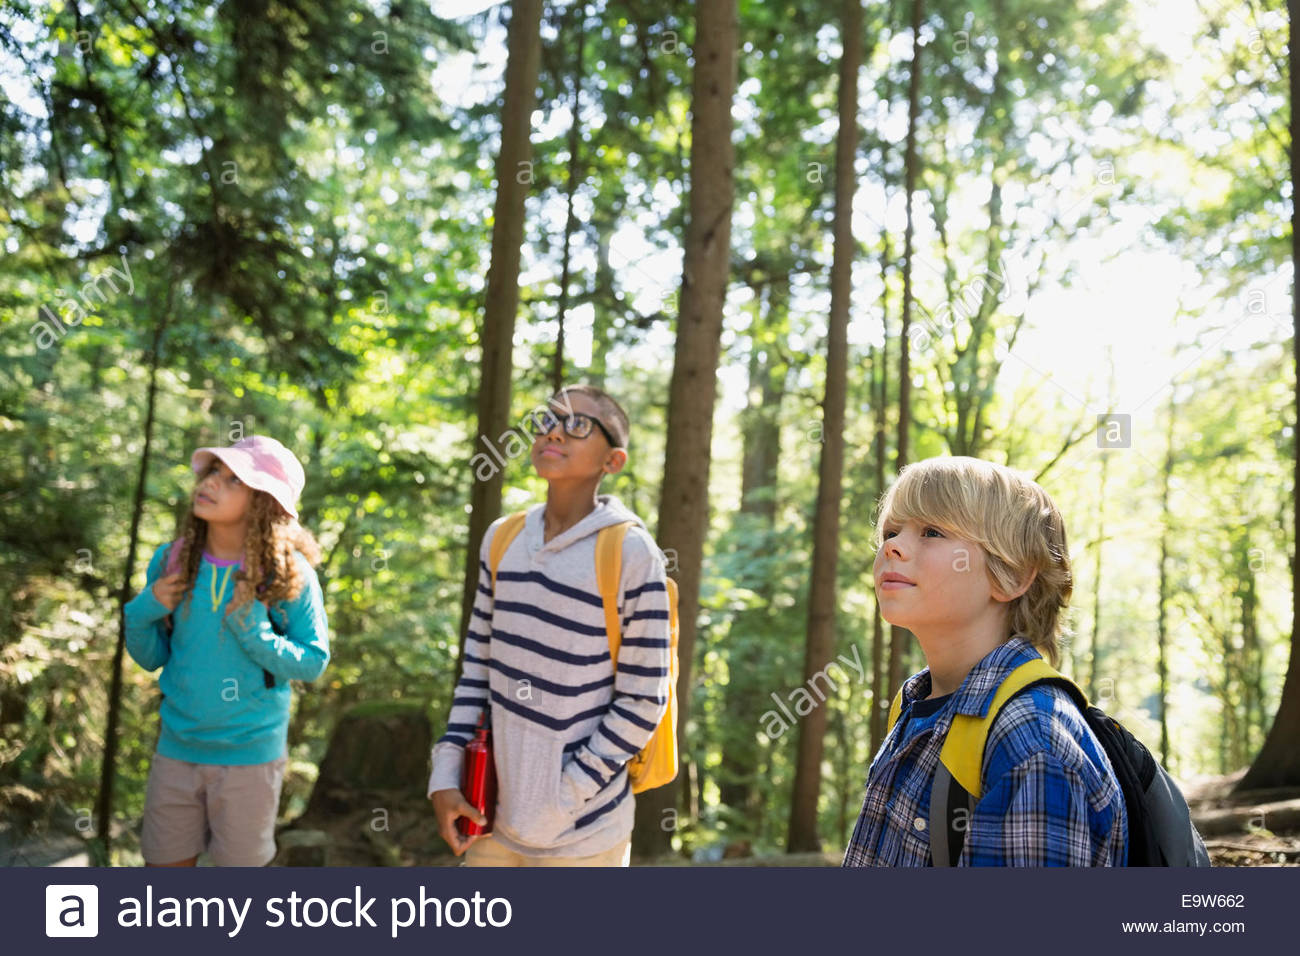 Children looking up at trees in woods - Stock Image